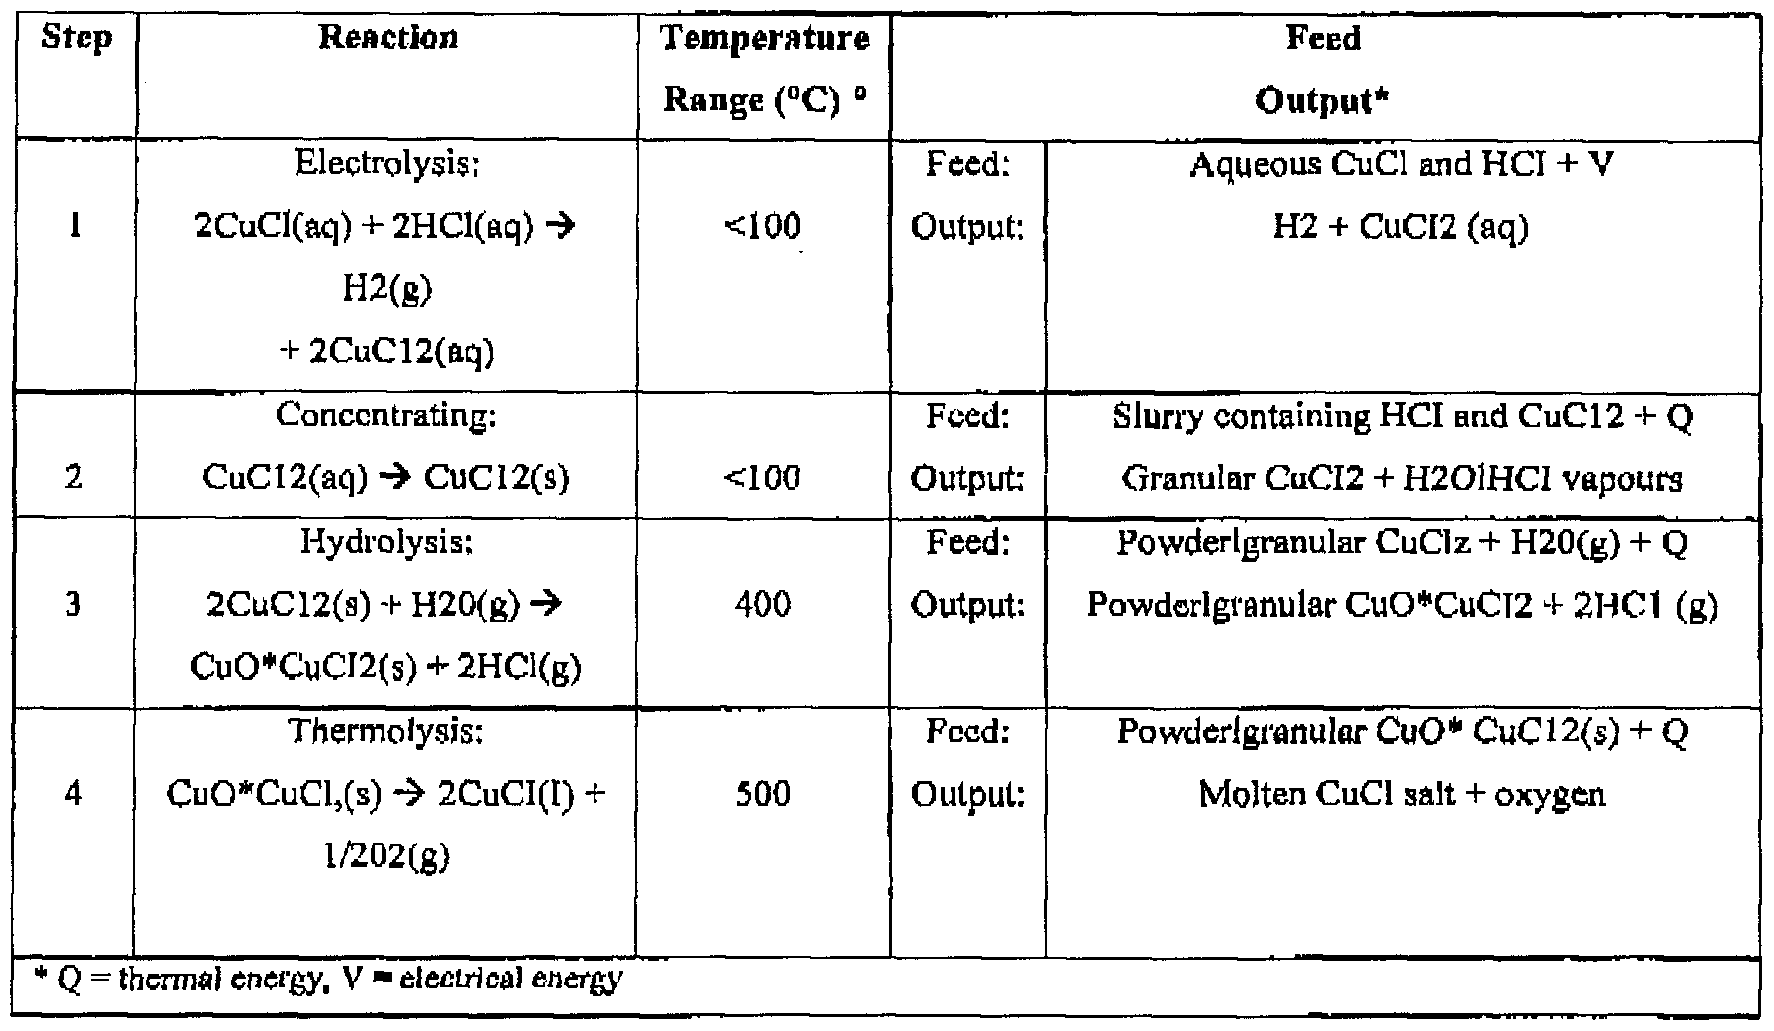 a sequence of chemical reactions transforming copper Learning sequence: chemical reactions and law of conservation of mass this is a 5-day instructional module embedded into a larger sequence of modules and lessons that allow for the learning and reinforcement of the law of conservation of mass (see diagram at the end of this document).